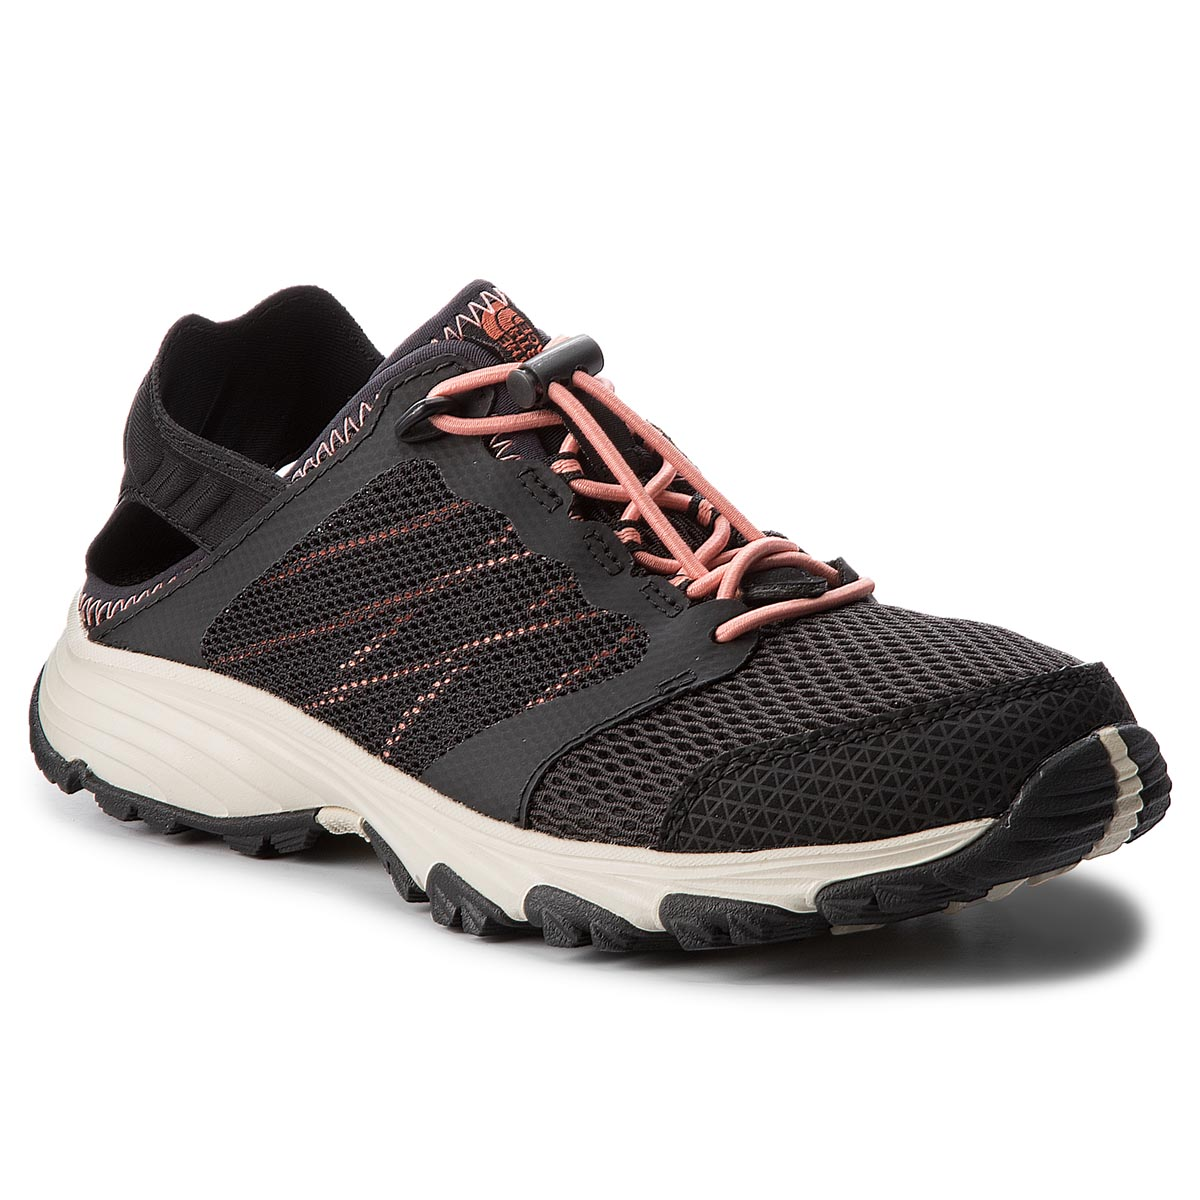 The North Face Skor THE NORTH FACE - Litewave Amphibious II T939I74GG Tnf Black/Desert Flower Orange